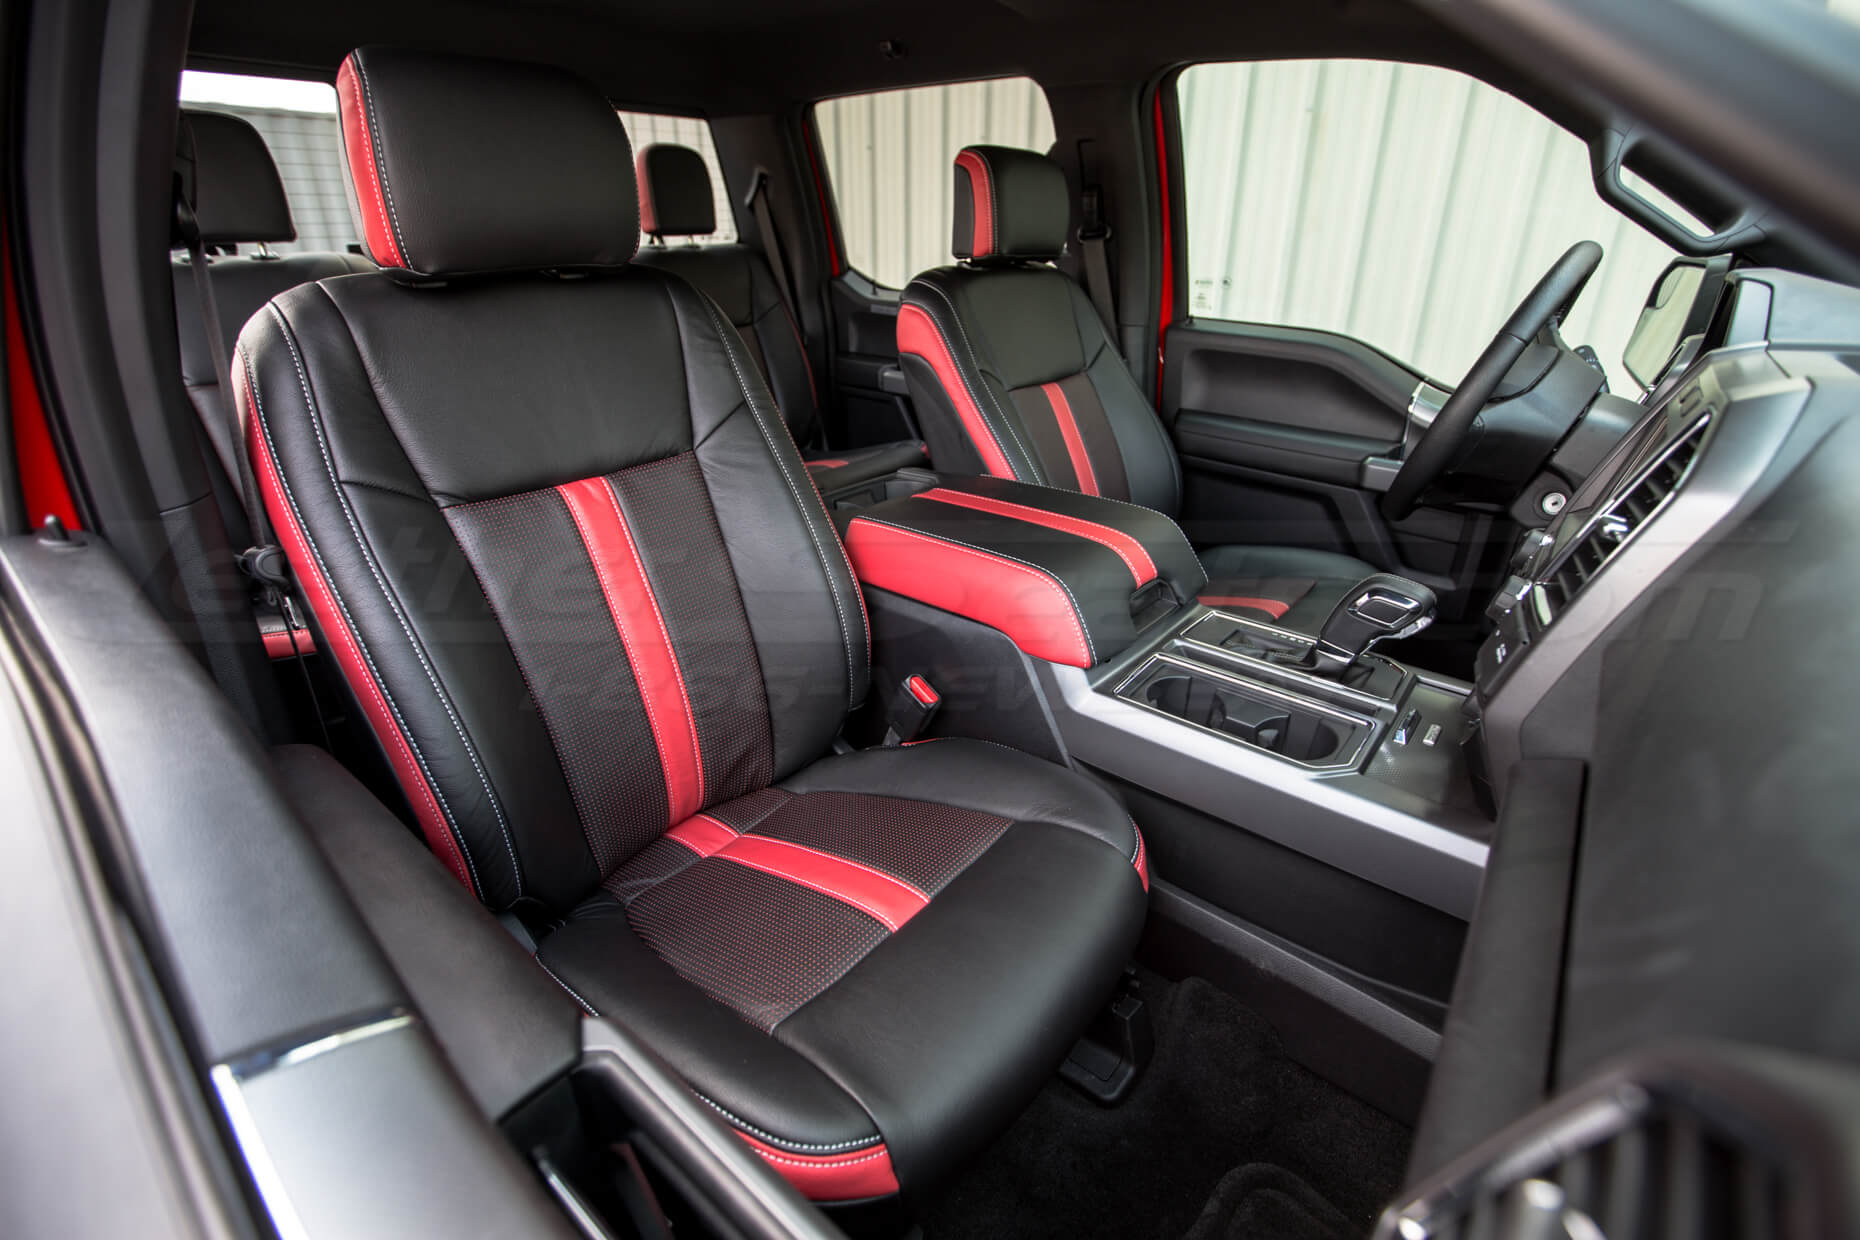 2015-2020 Ford F-150 Installed Black & Piazza Red - Front Passenger Seat